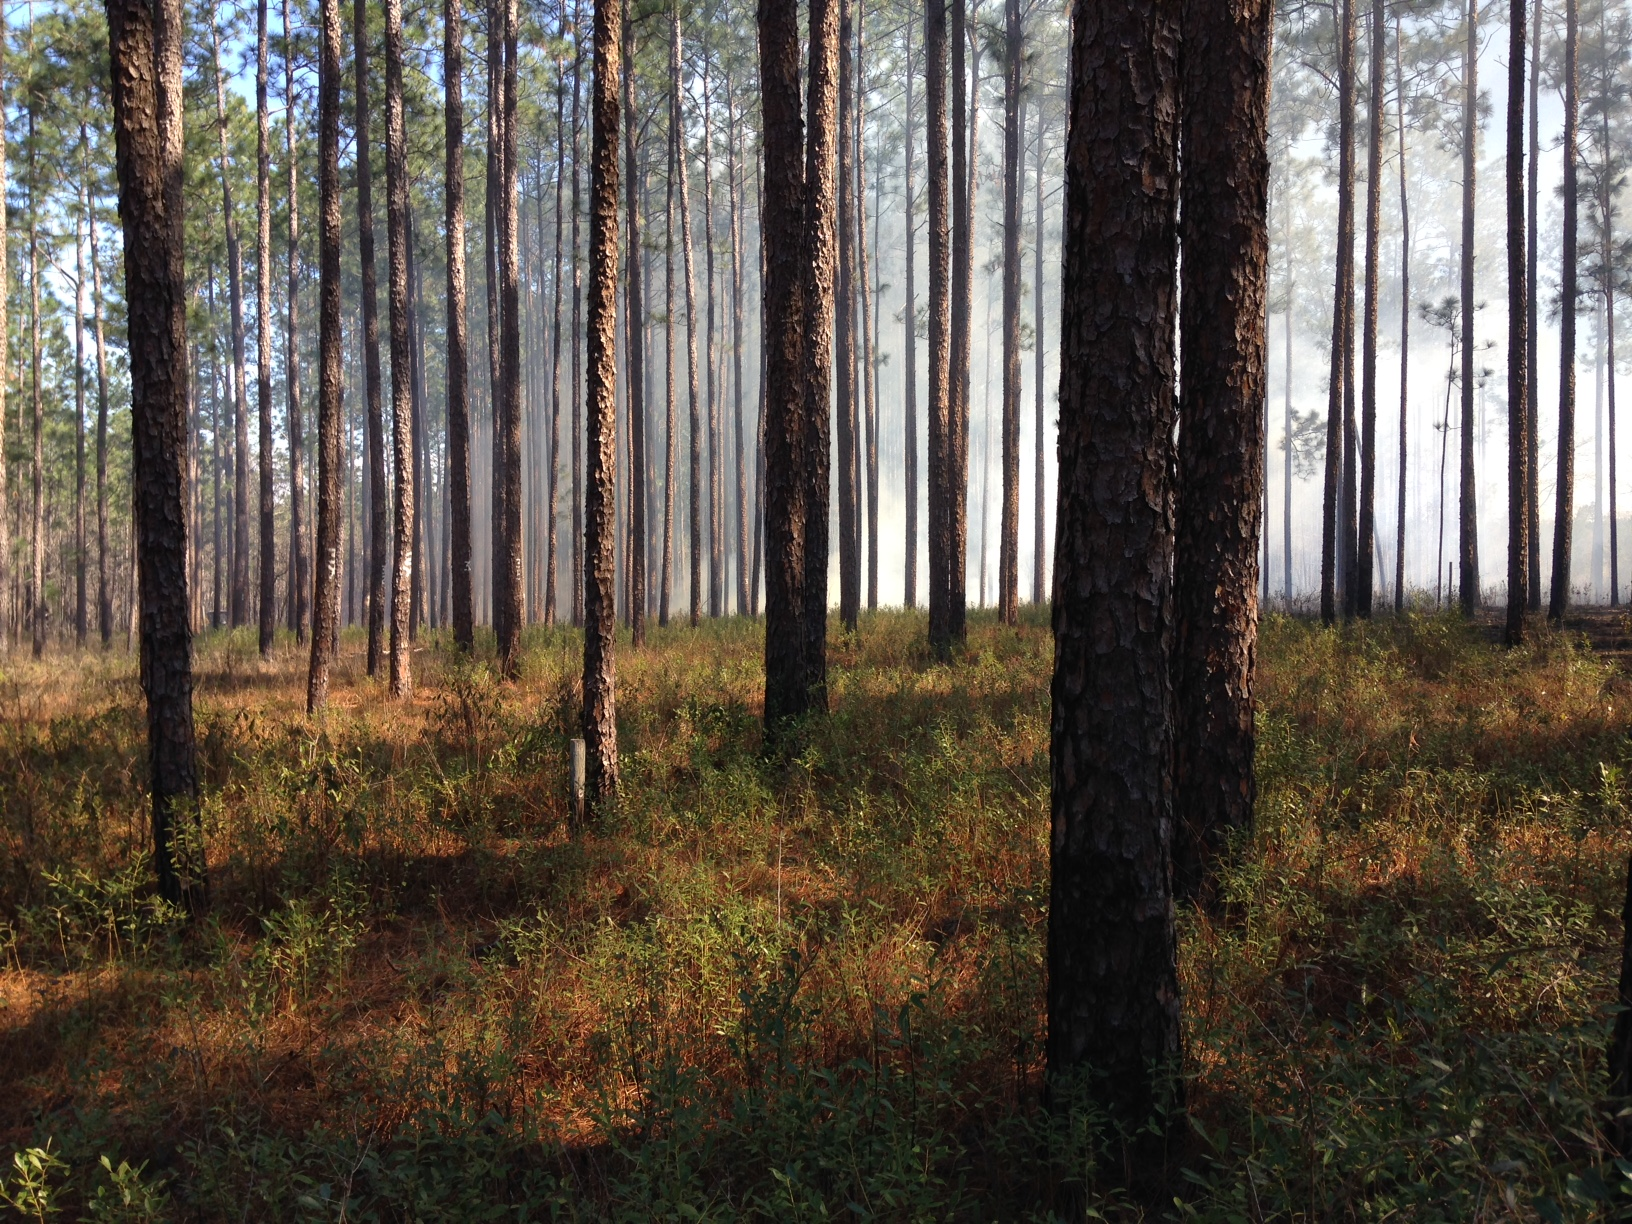 Photo of a pine forest ecosystem.